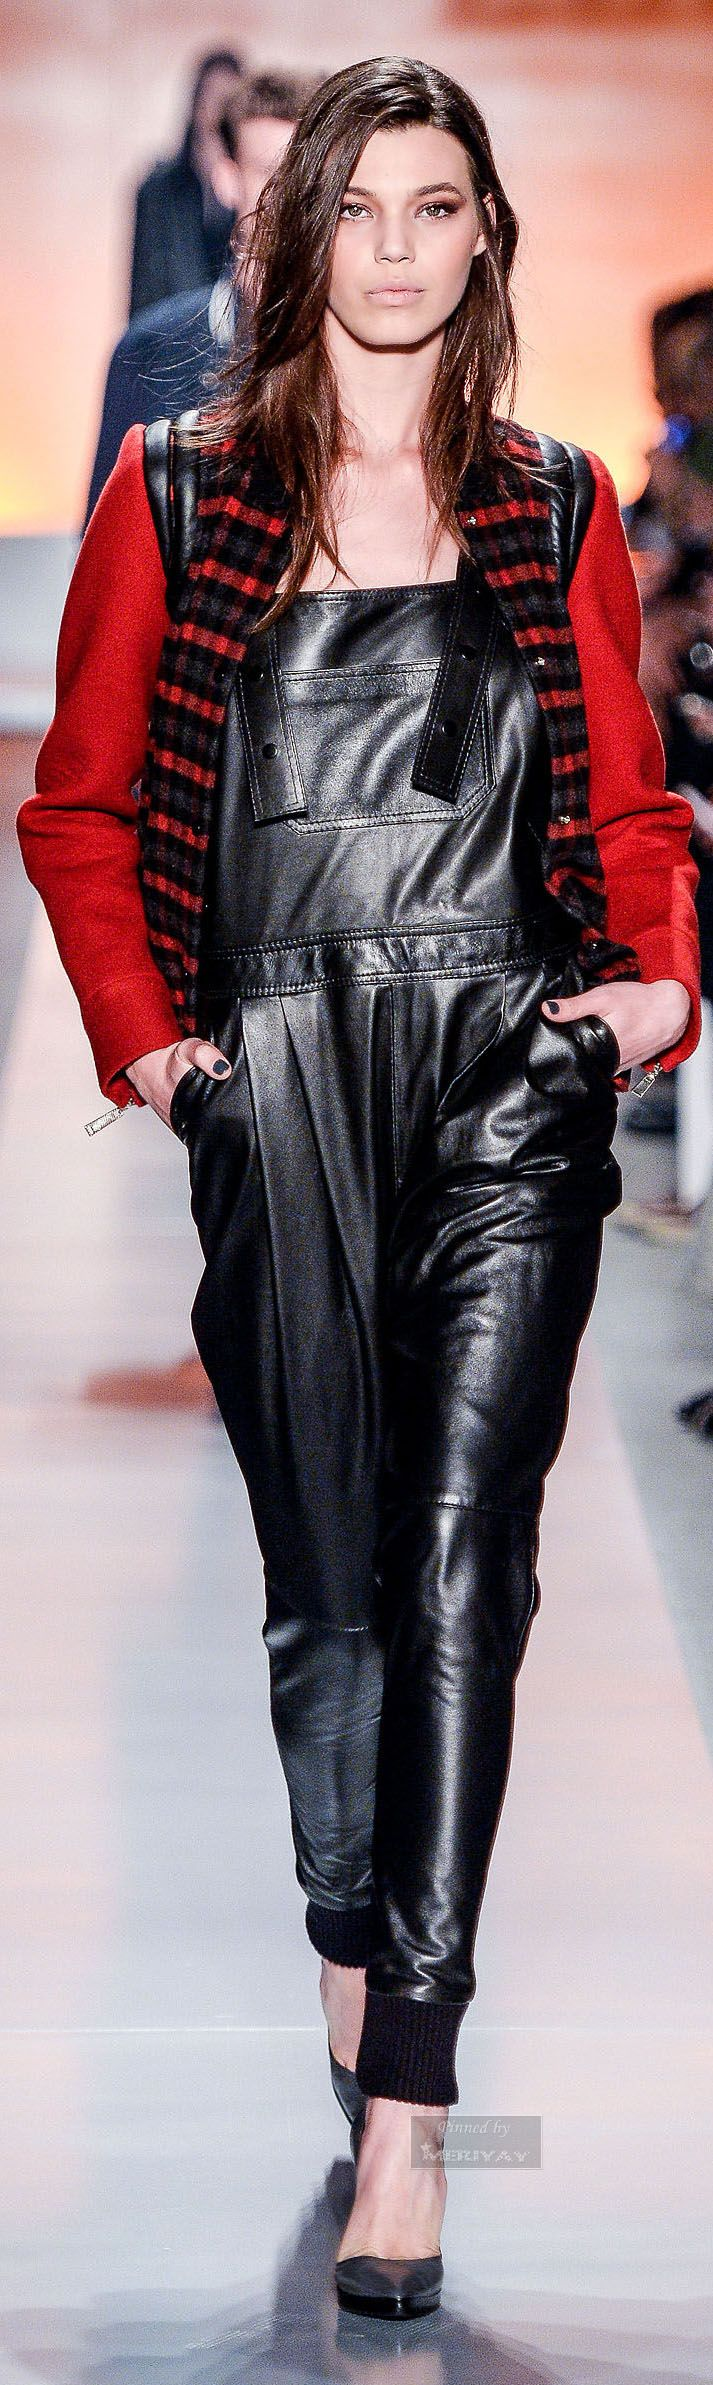 245 Best Images About Leather Catsuits Overalls On